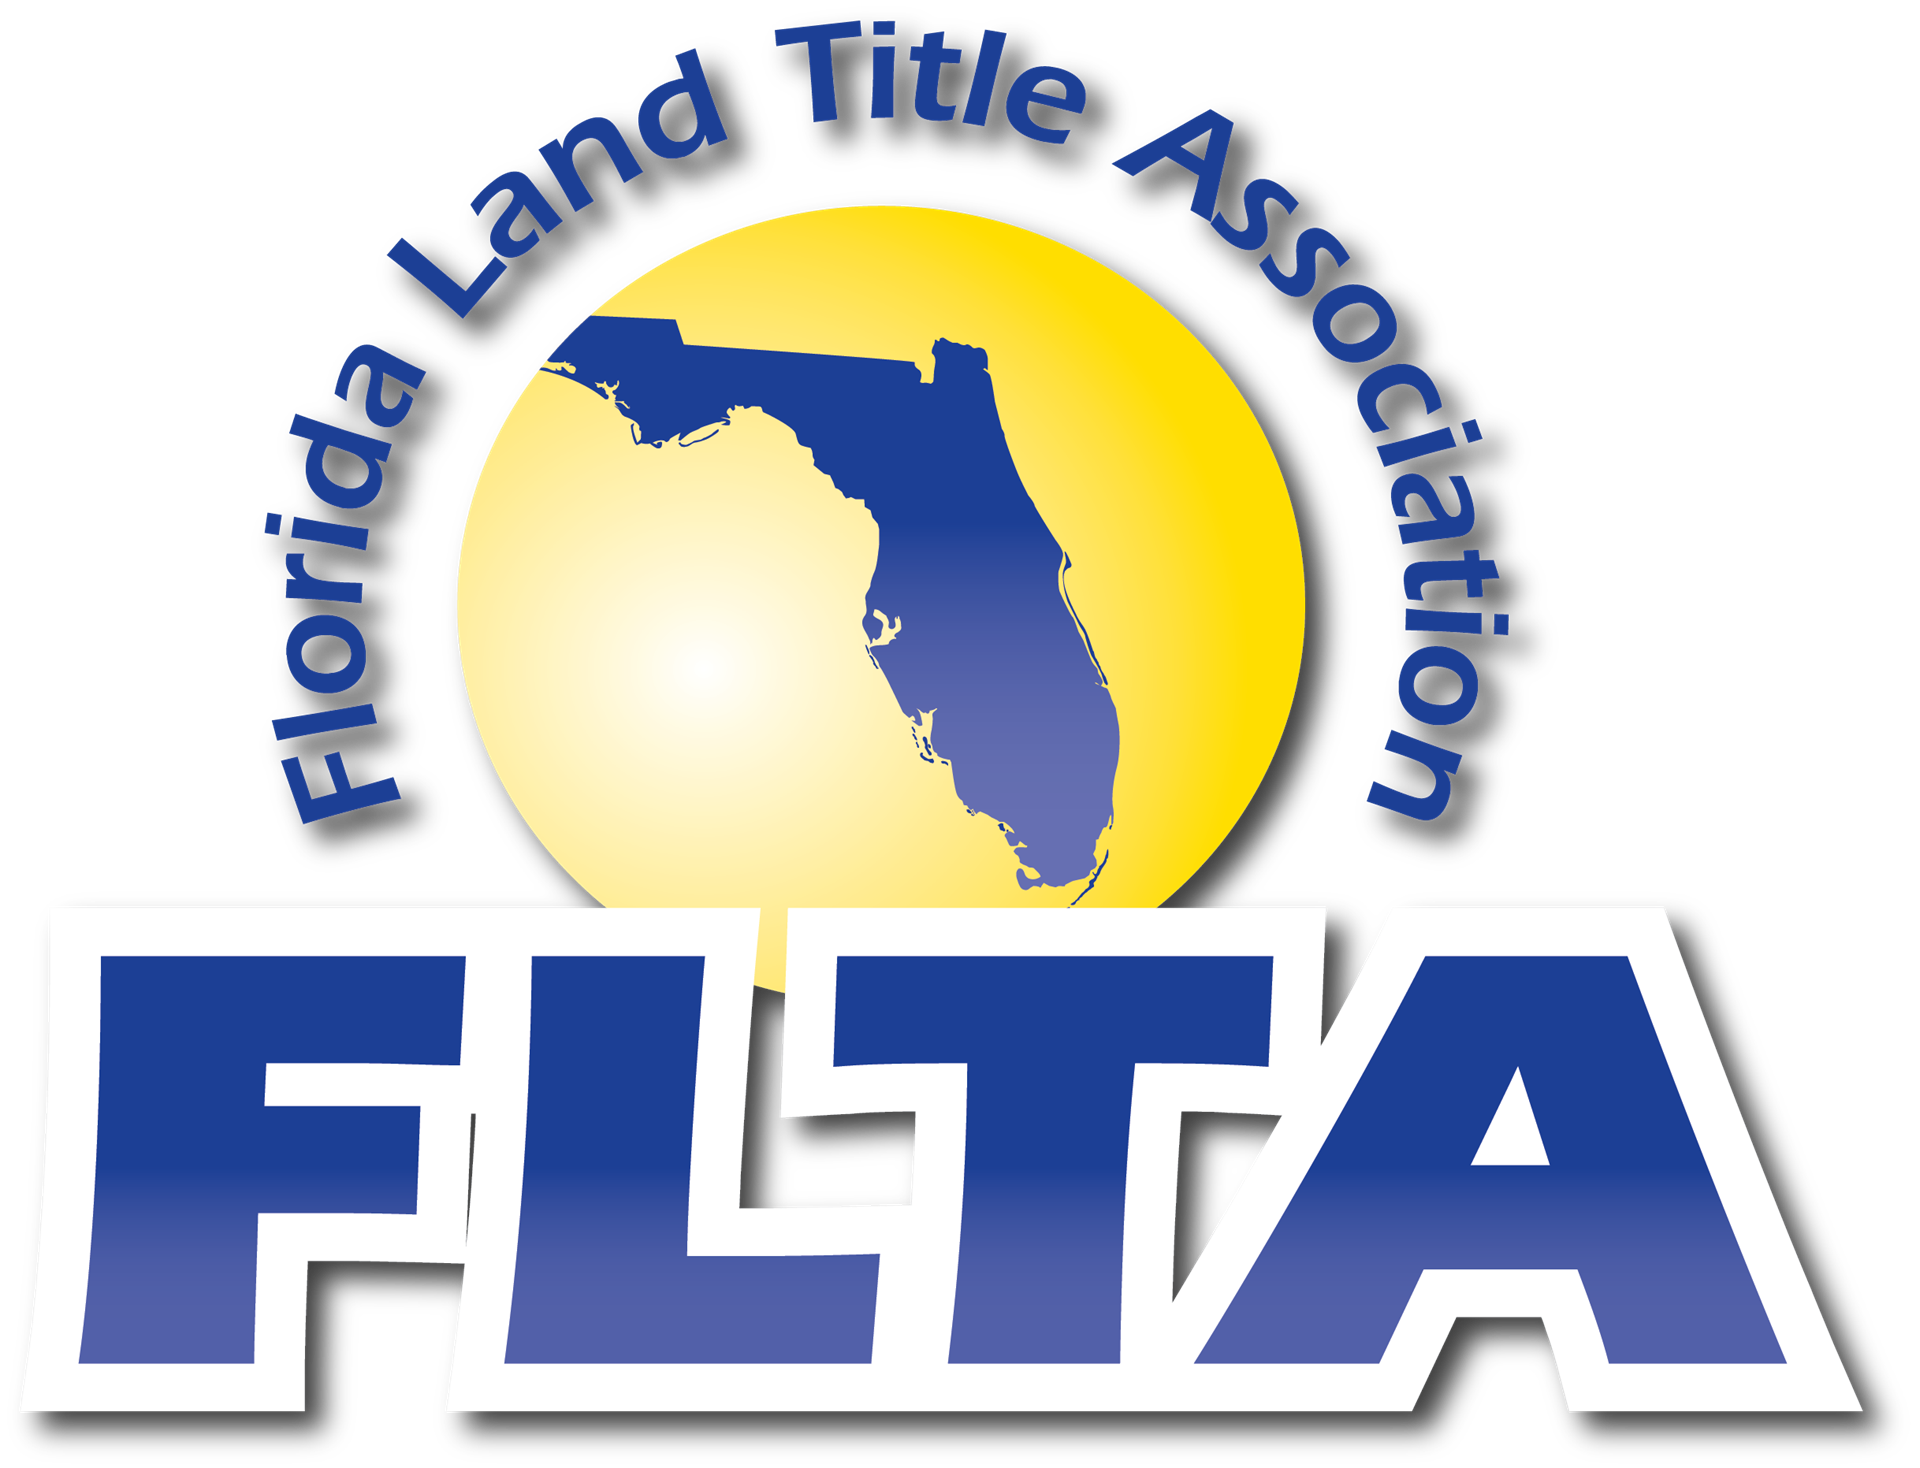 FLORIDA LAND TITLE ASSOCIATION ANNUAL CONVENTION